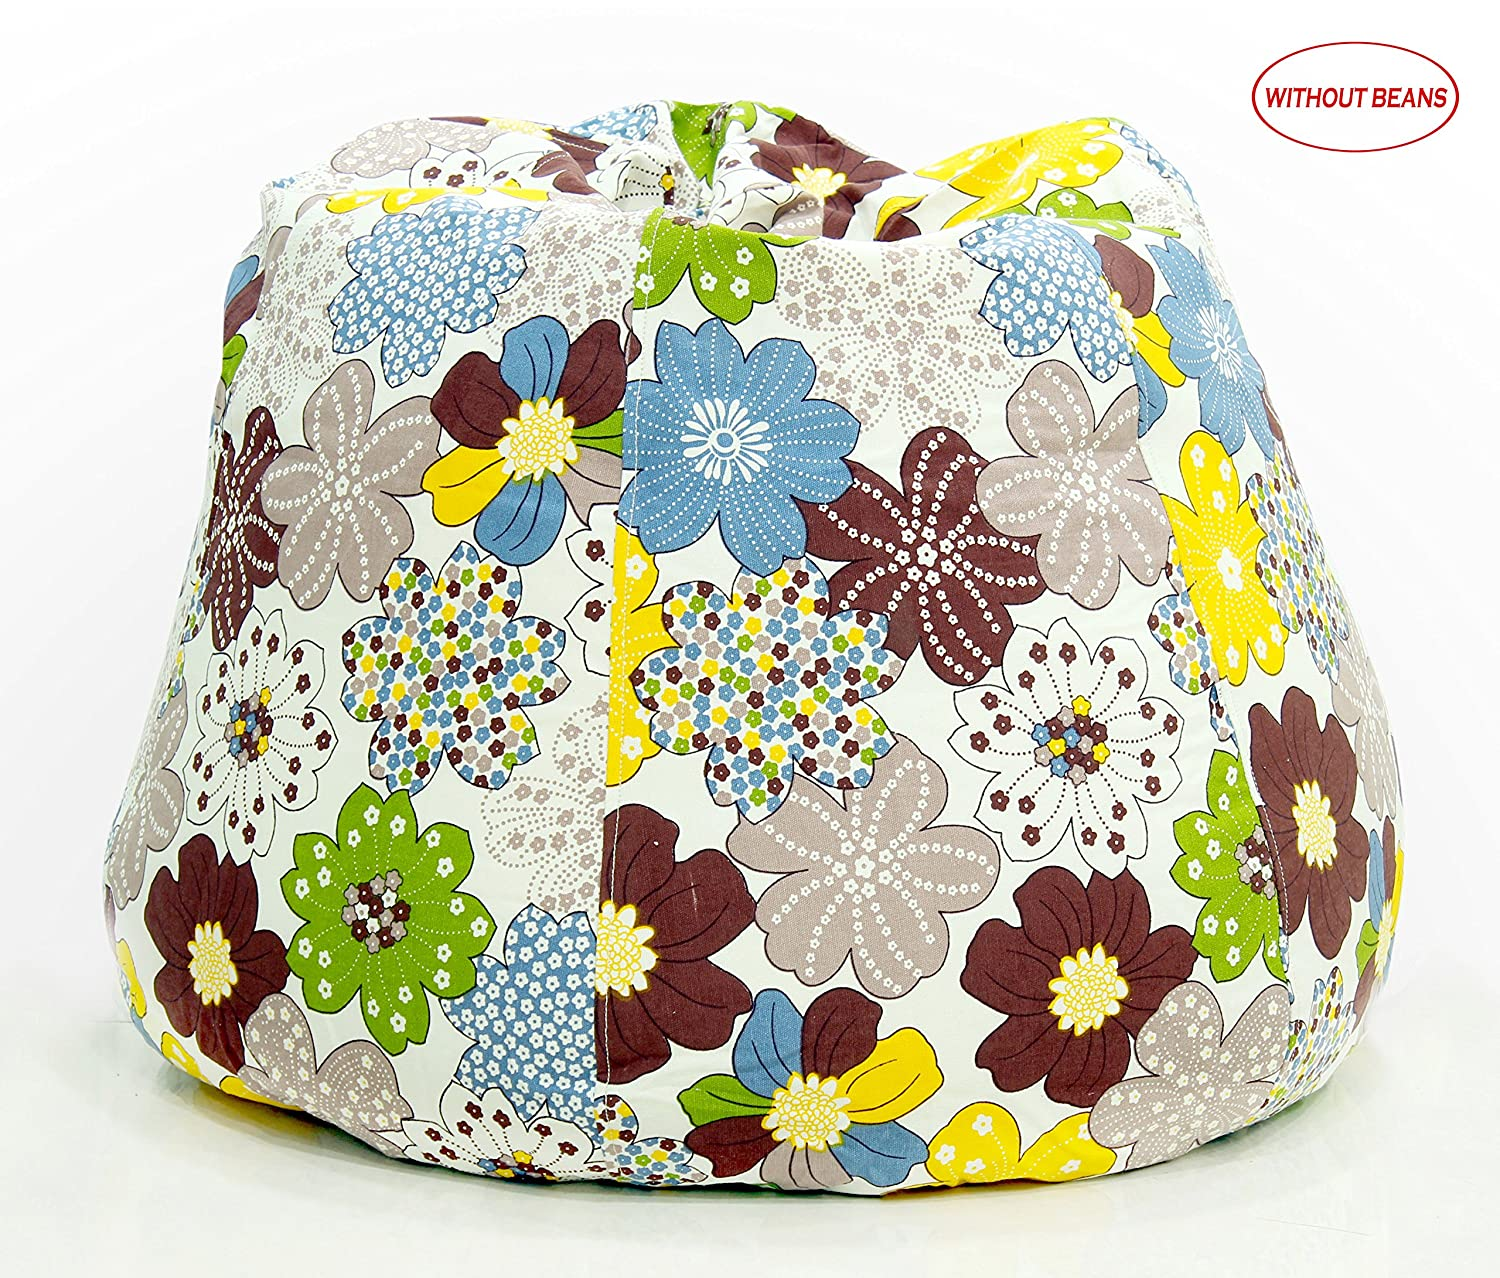 Story@Home XXL Flower Print Canvas Bean Bag Chair Cover Without Beans, Brown